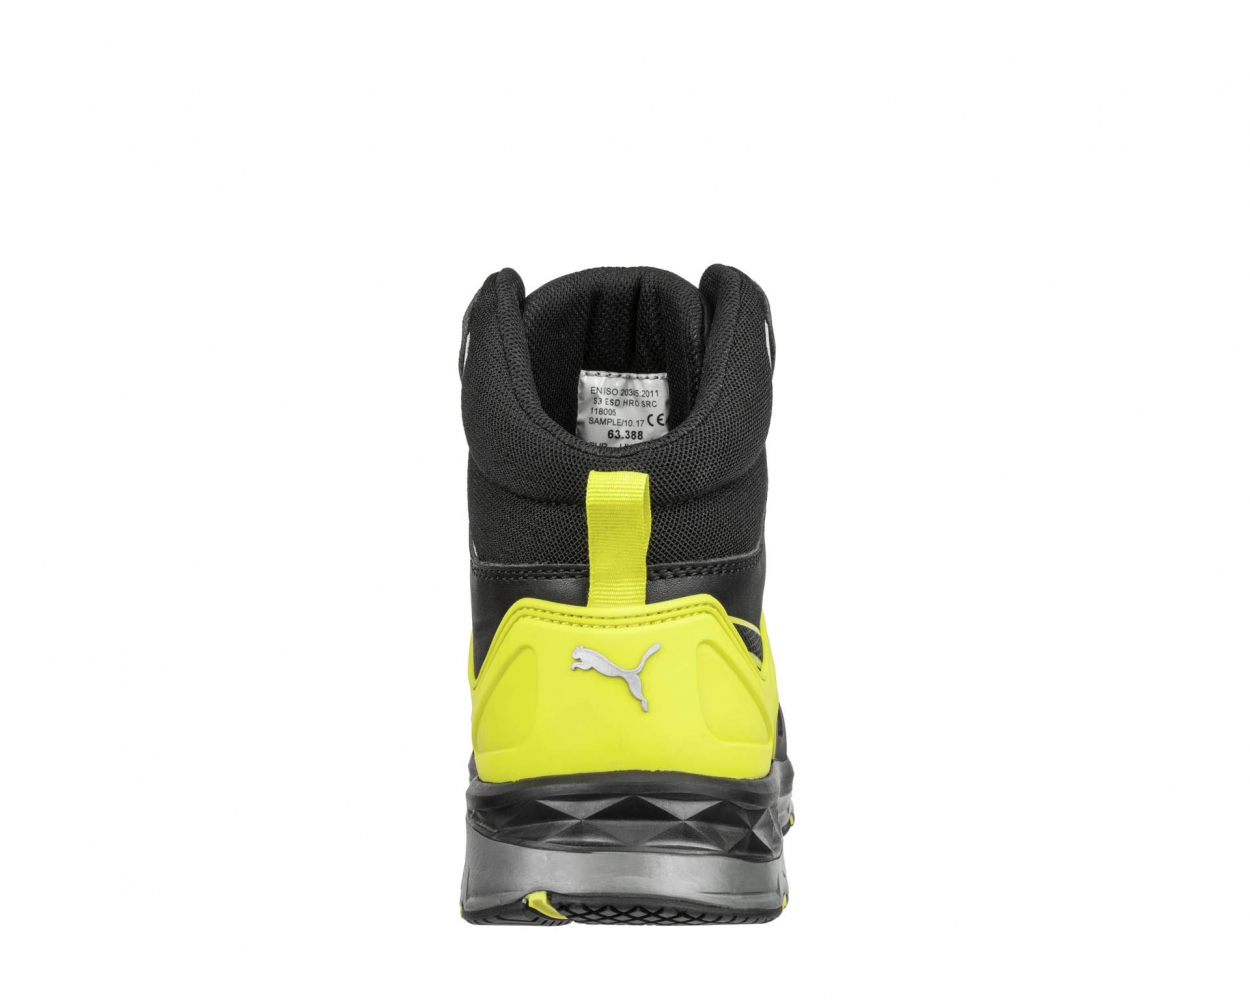 d4cb89d04f4 PUMA 633880 VELOCITY 2.0 YELLOW MID Safety boots S3 ESD HRO SRC ...